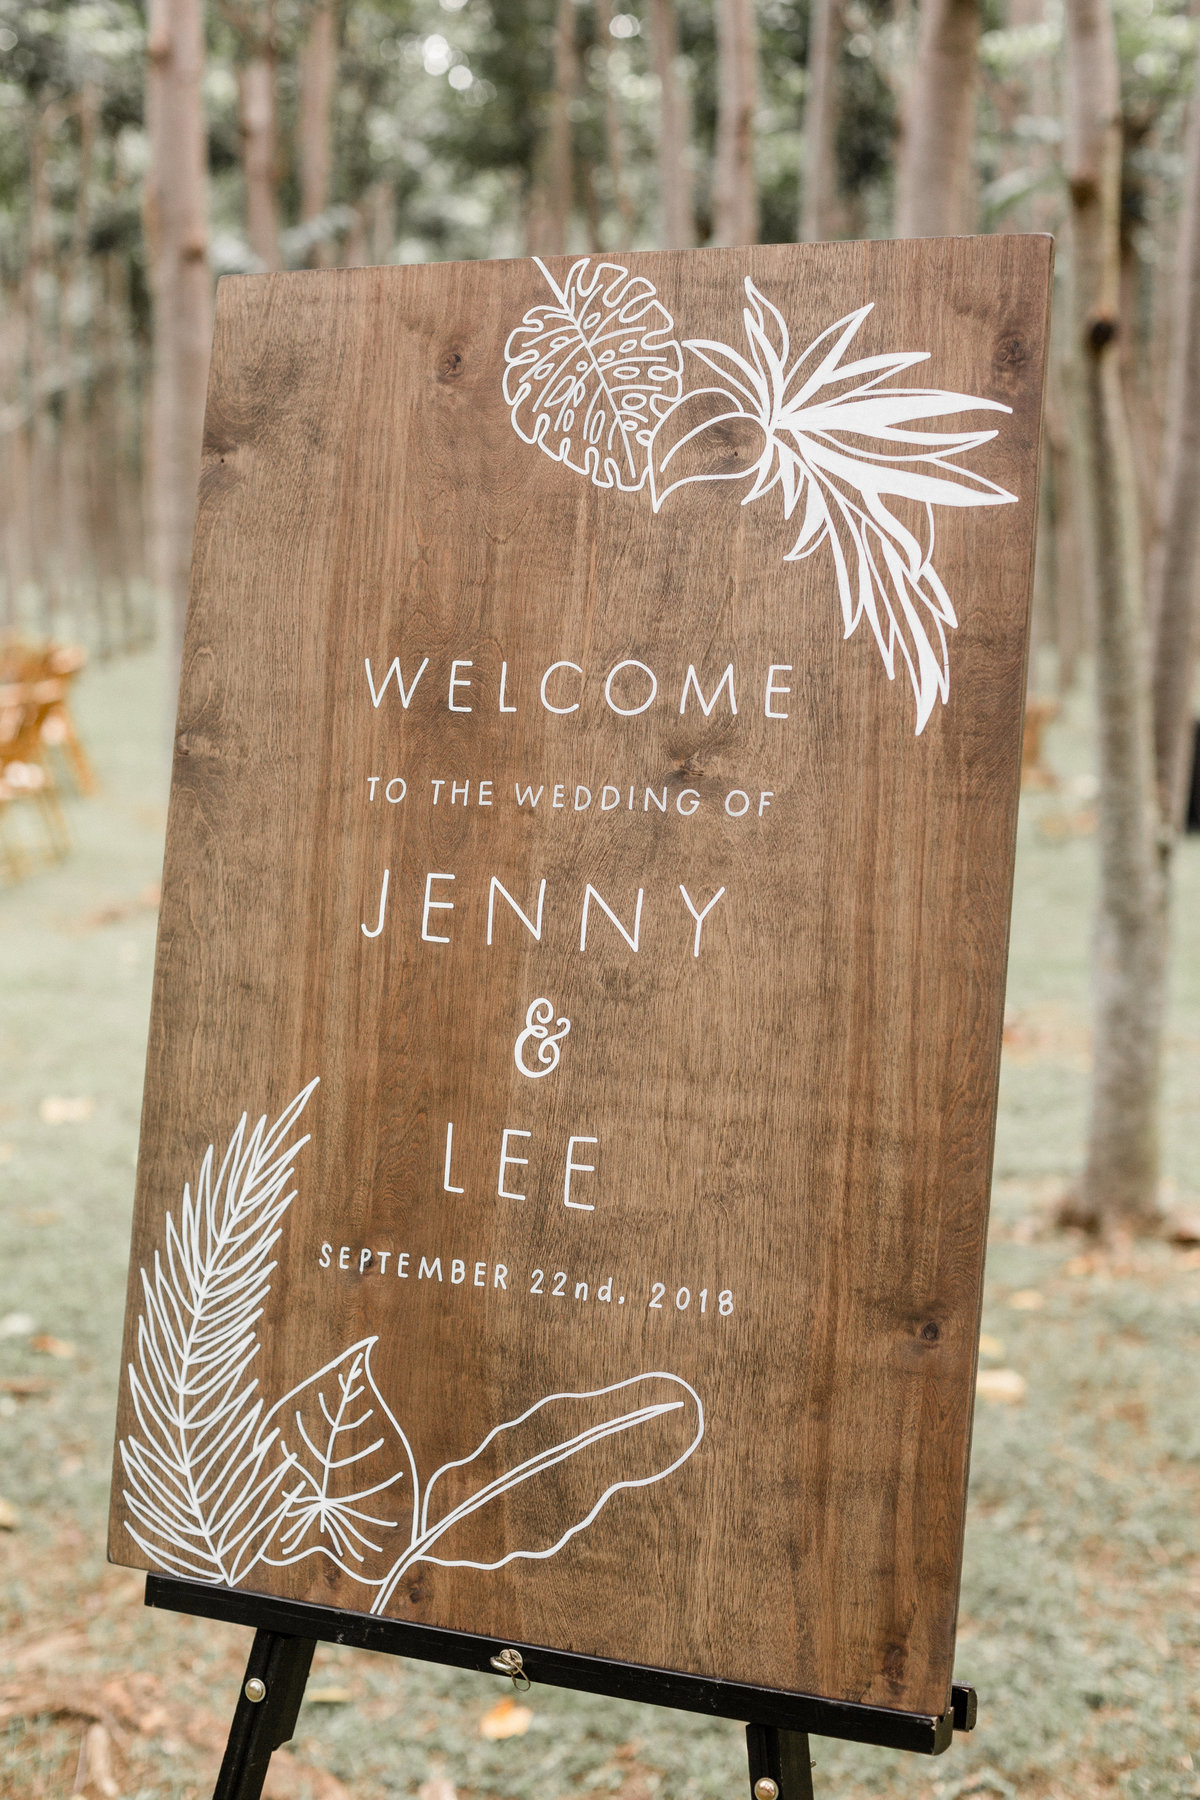 Jenny-and-Lee-Kauai-Wedding-by-Lilly-Red-429